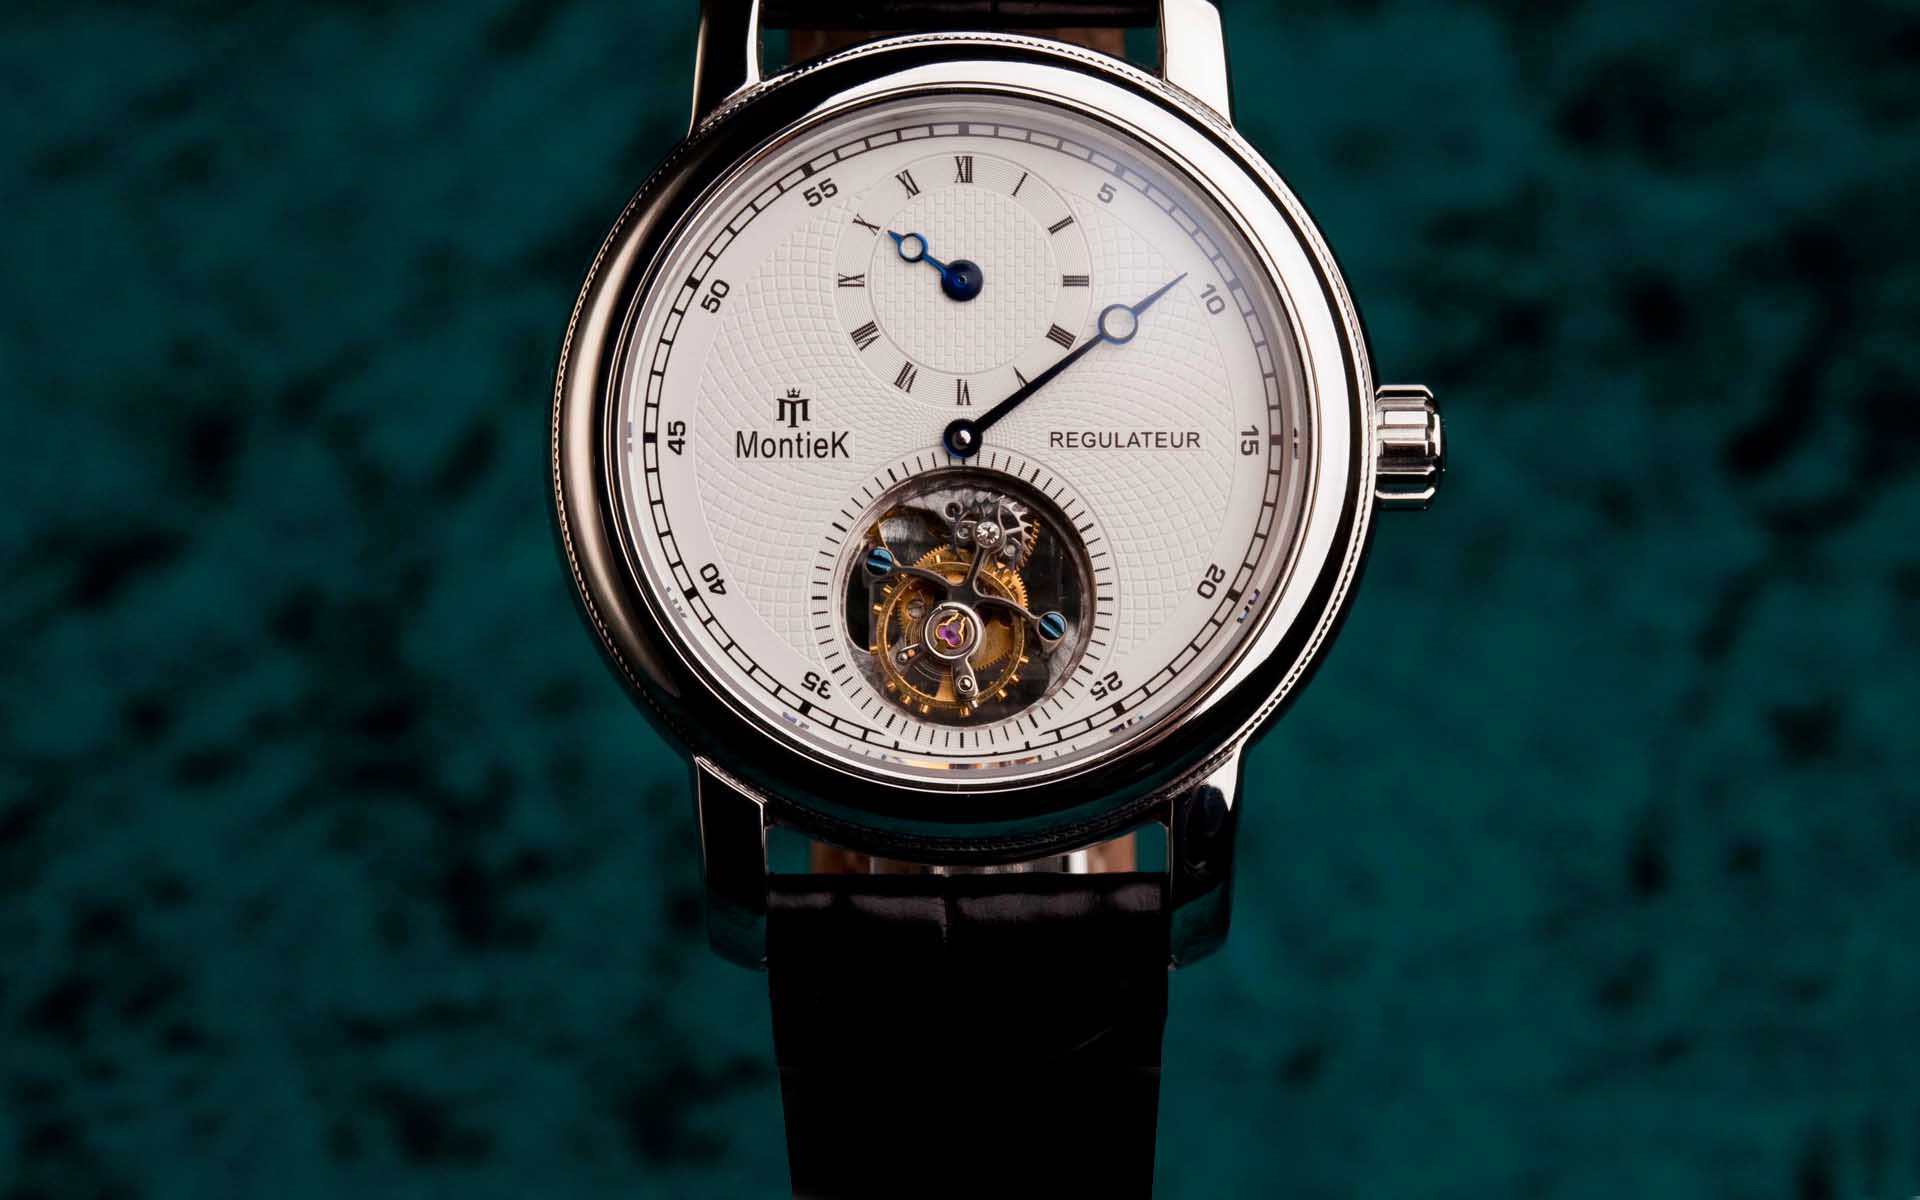 Tourbillon horloges